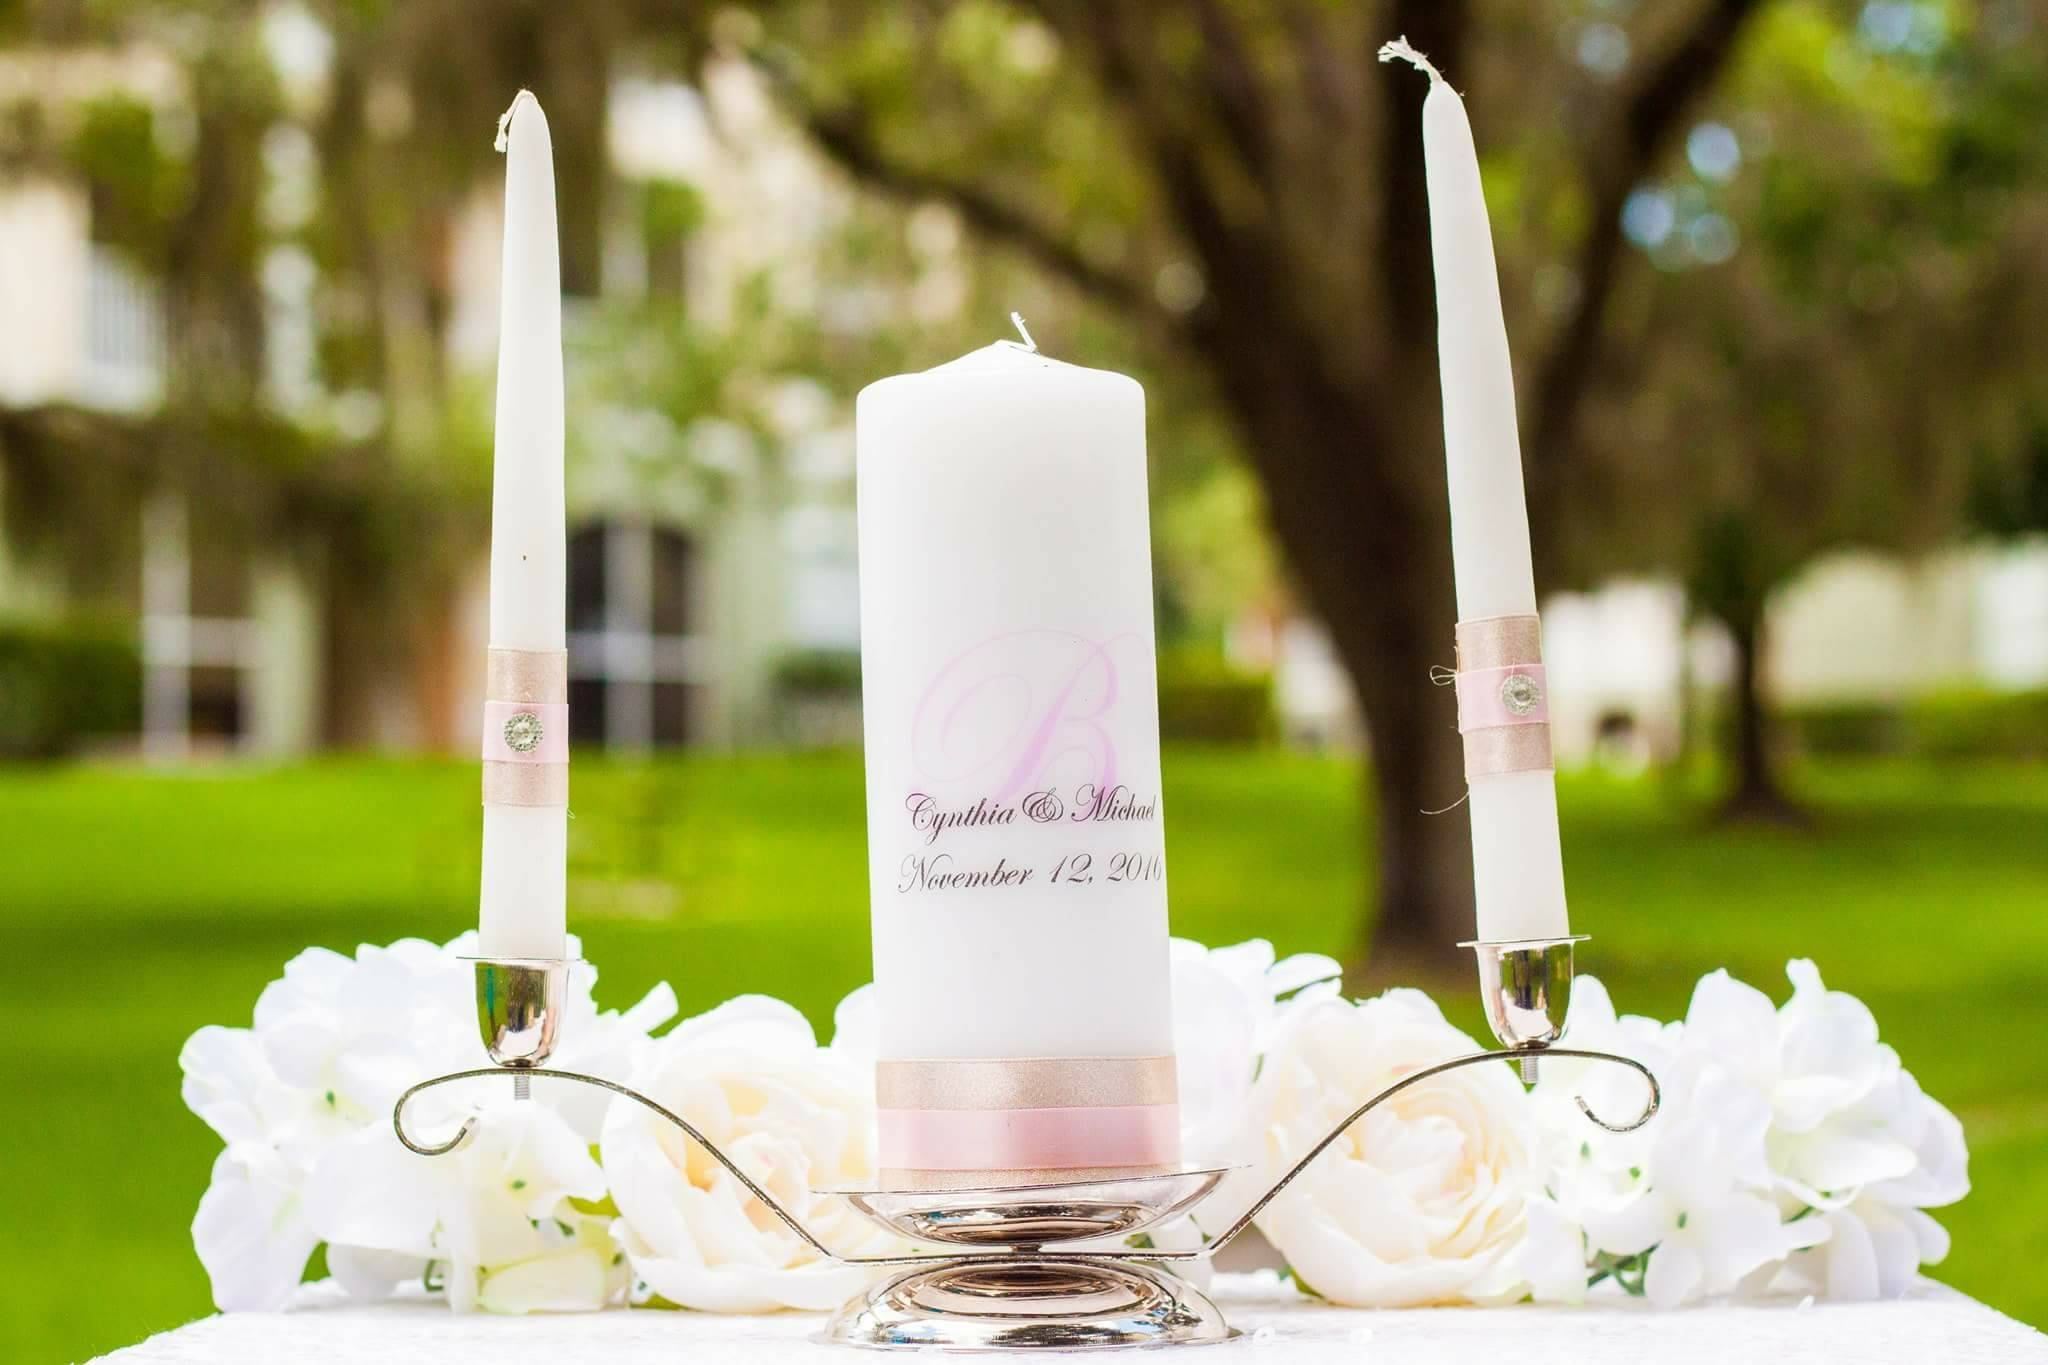 Personalized Unity Candle Set, Champagne & Rose Candle - ADR Decor